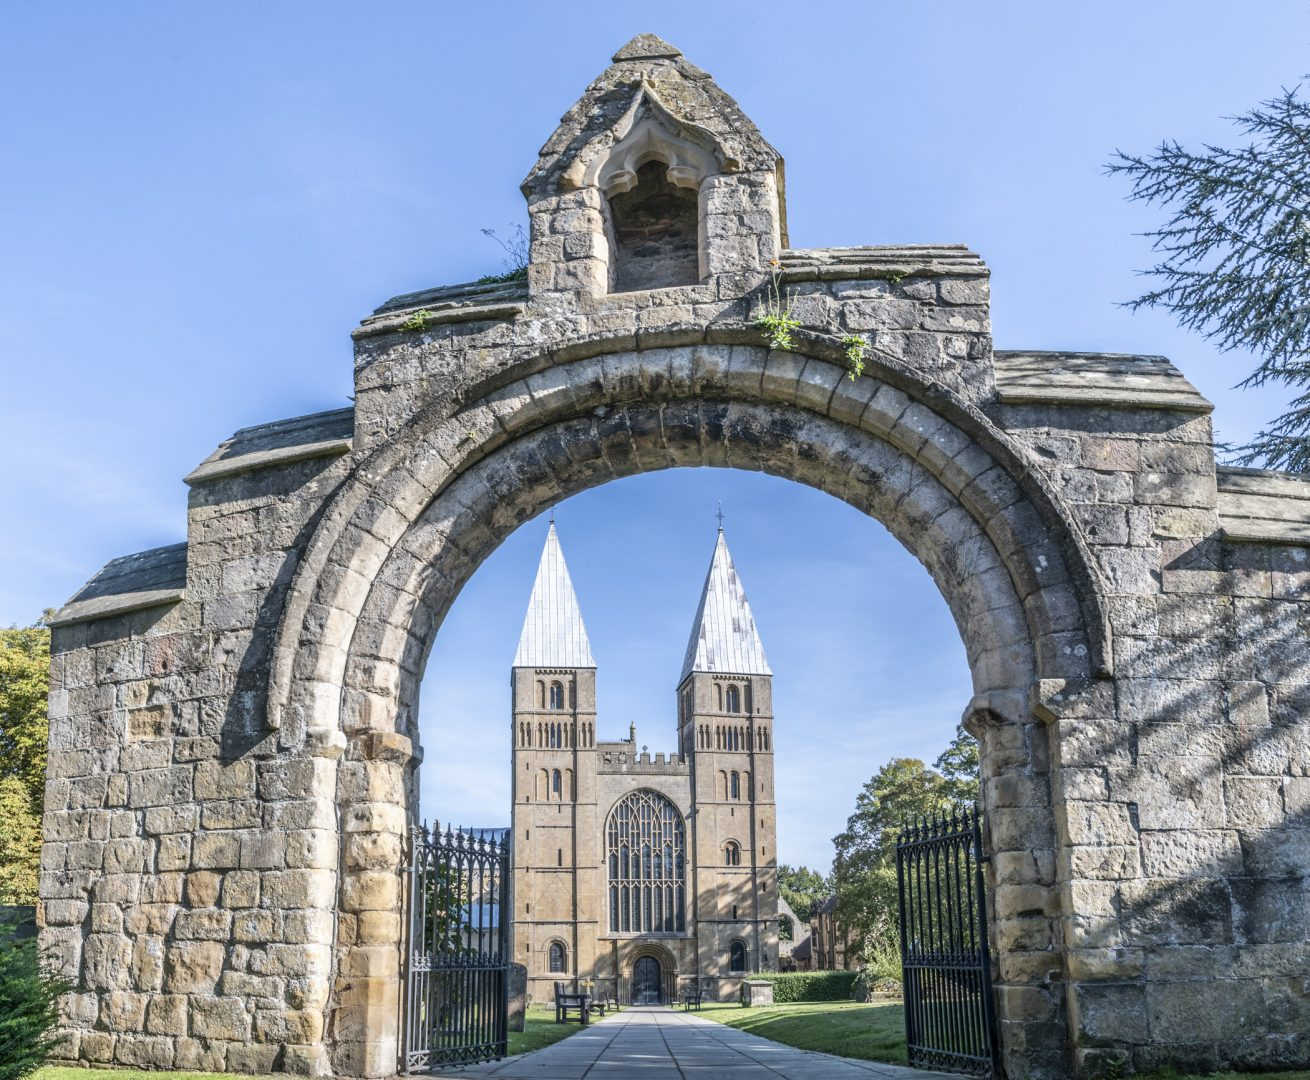 Southwell Minster through the gate entrance